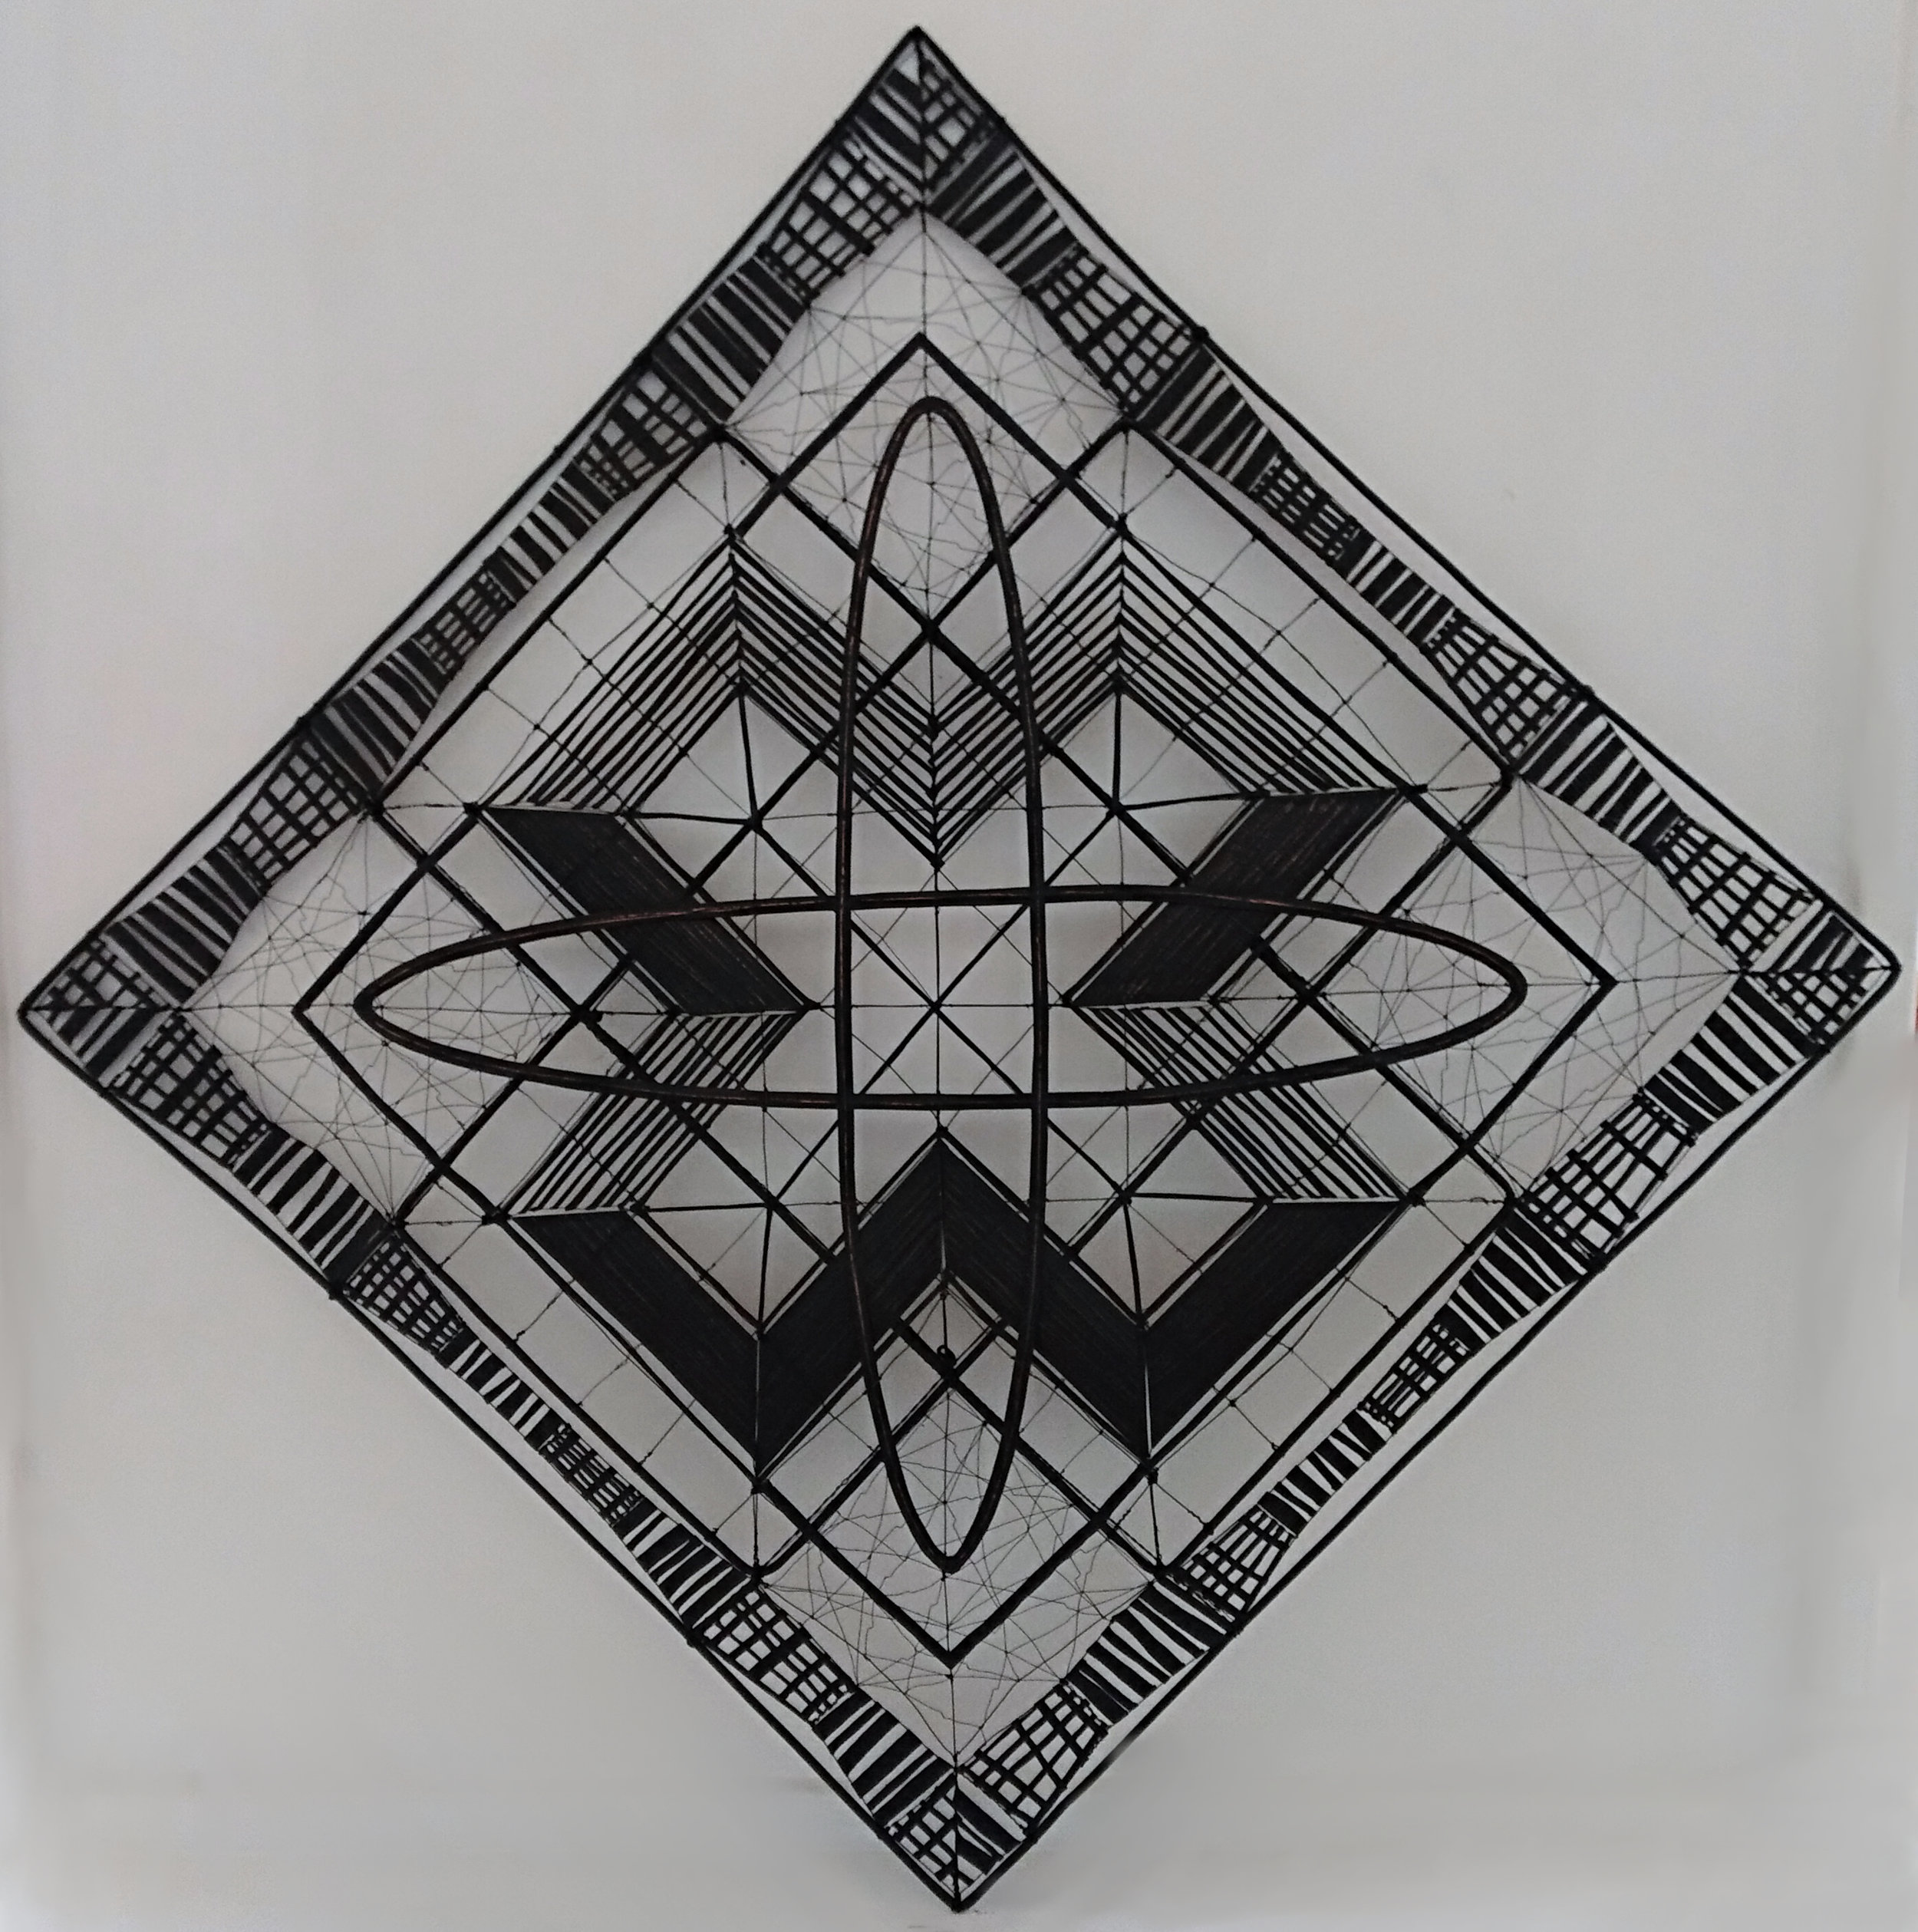 Criss Cross Rudy van der Pol, wire wall screen, 940mm x 940mm (can be hung as a square or diamond) $4,550.00